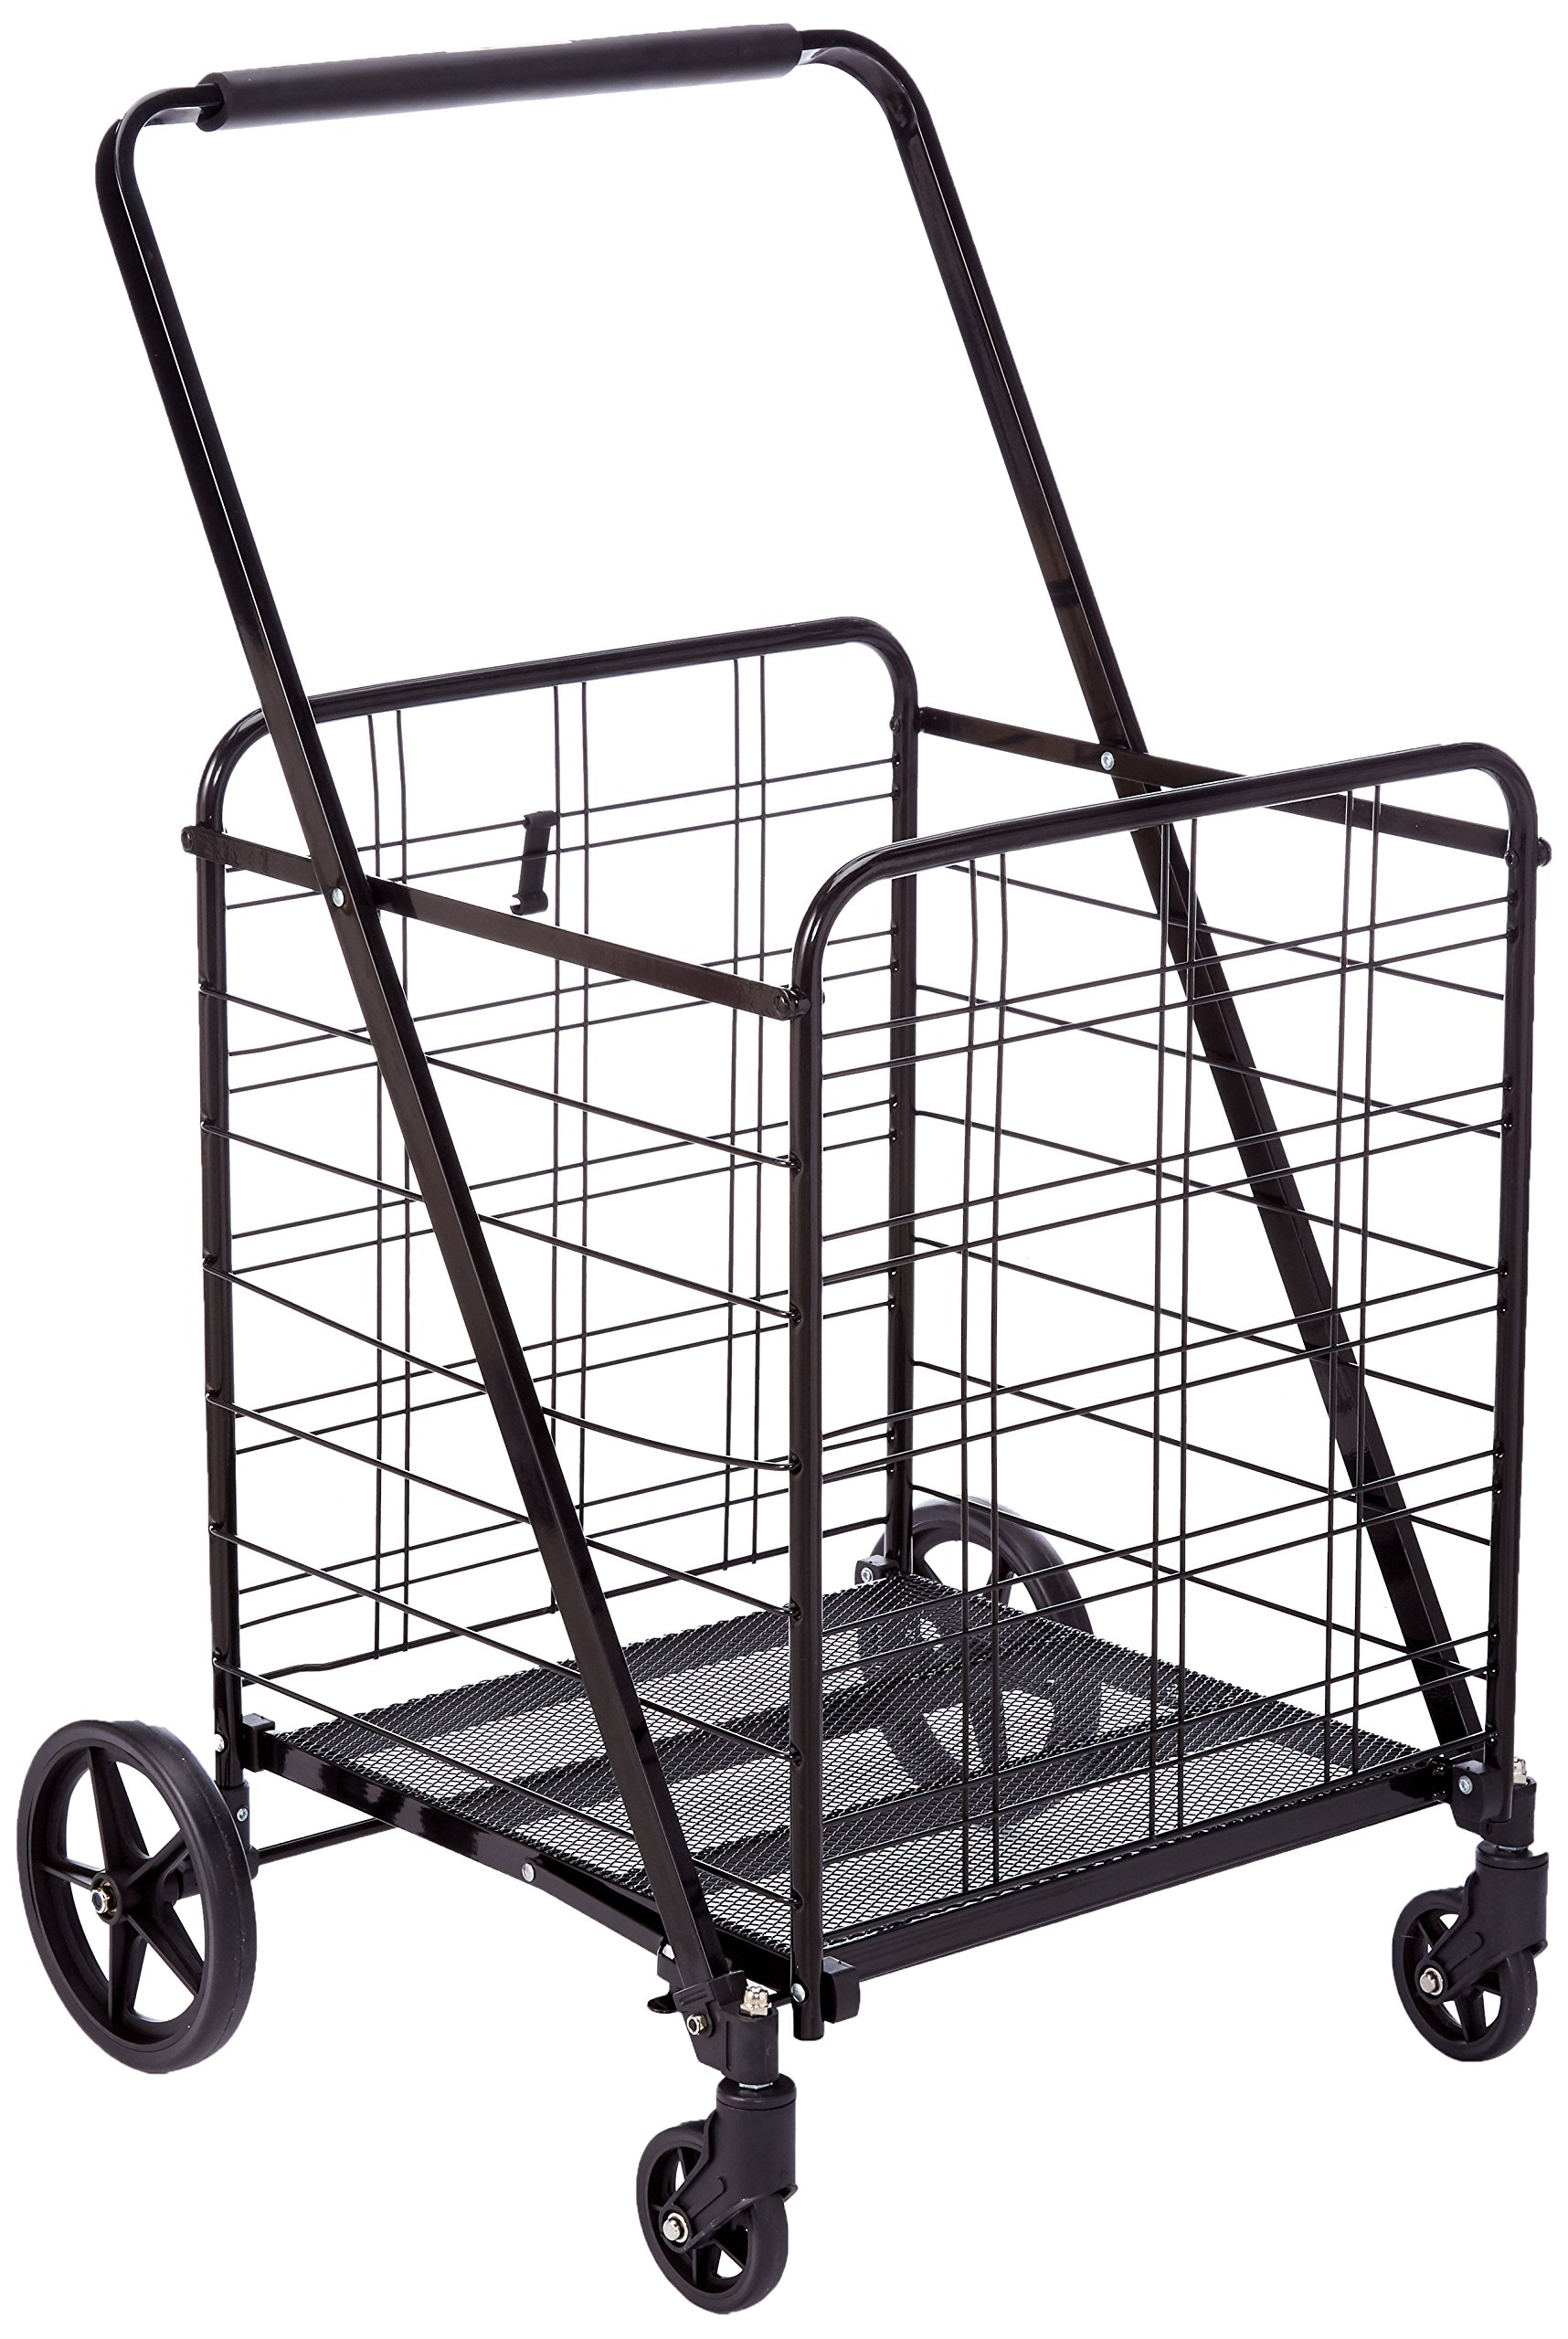 Uniware 360 Degree Wheel Folding Super Jumbo Shopping Cart 51.25 X 8 X 27 Inch (Black) [1203]